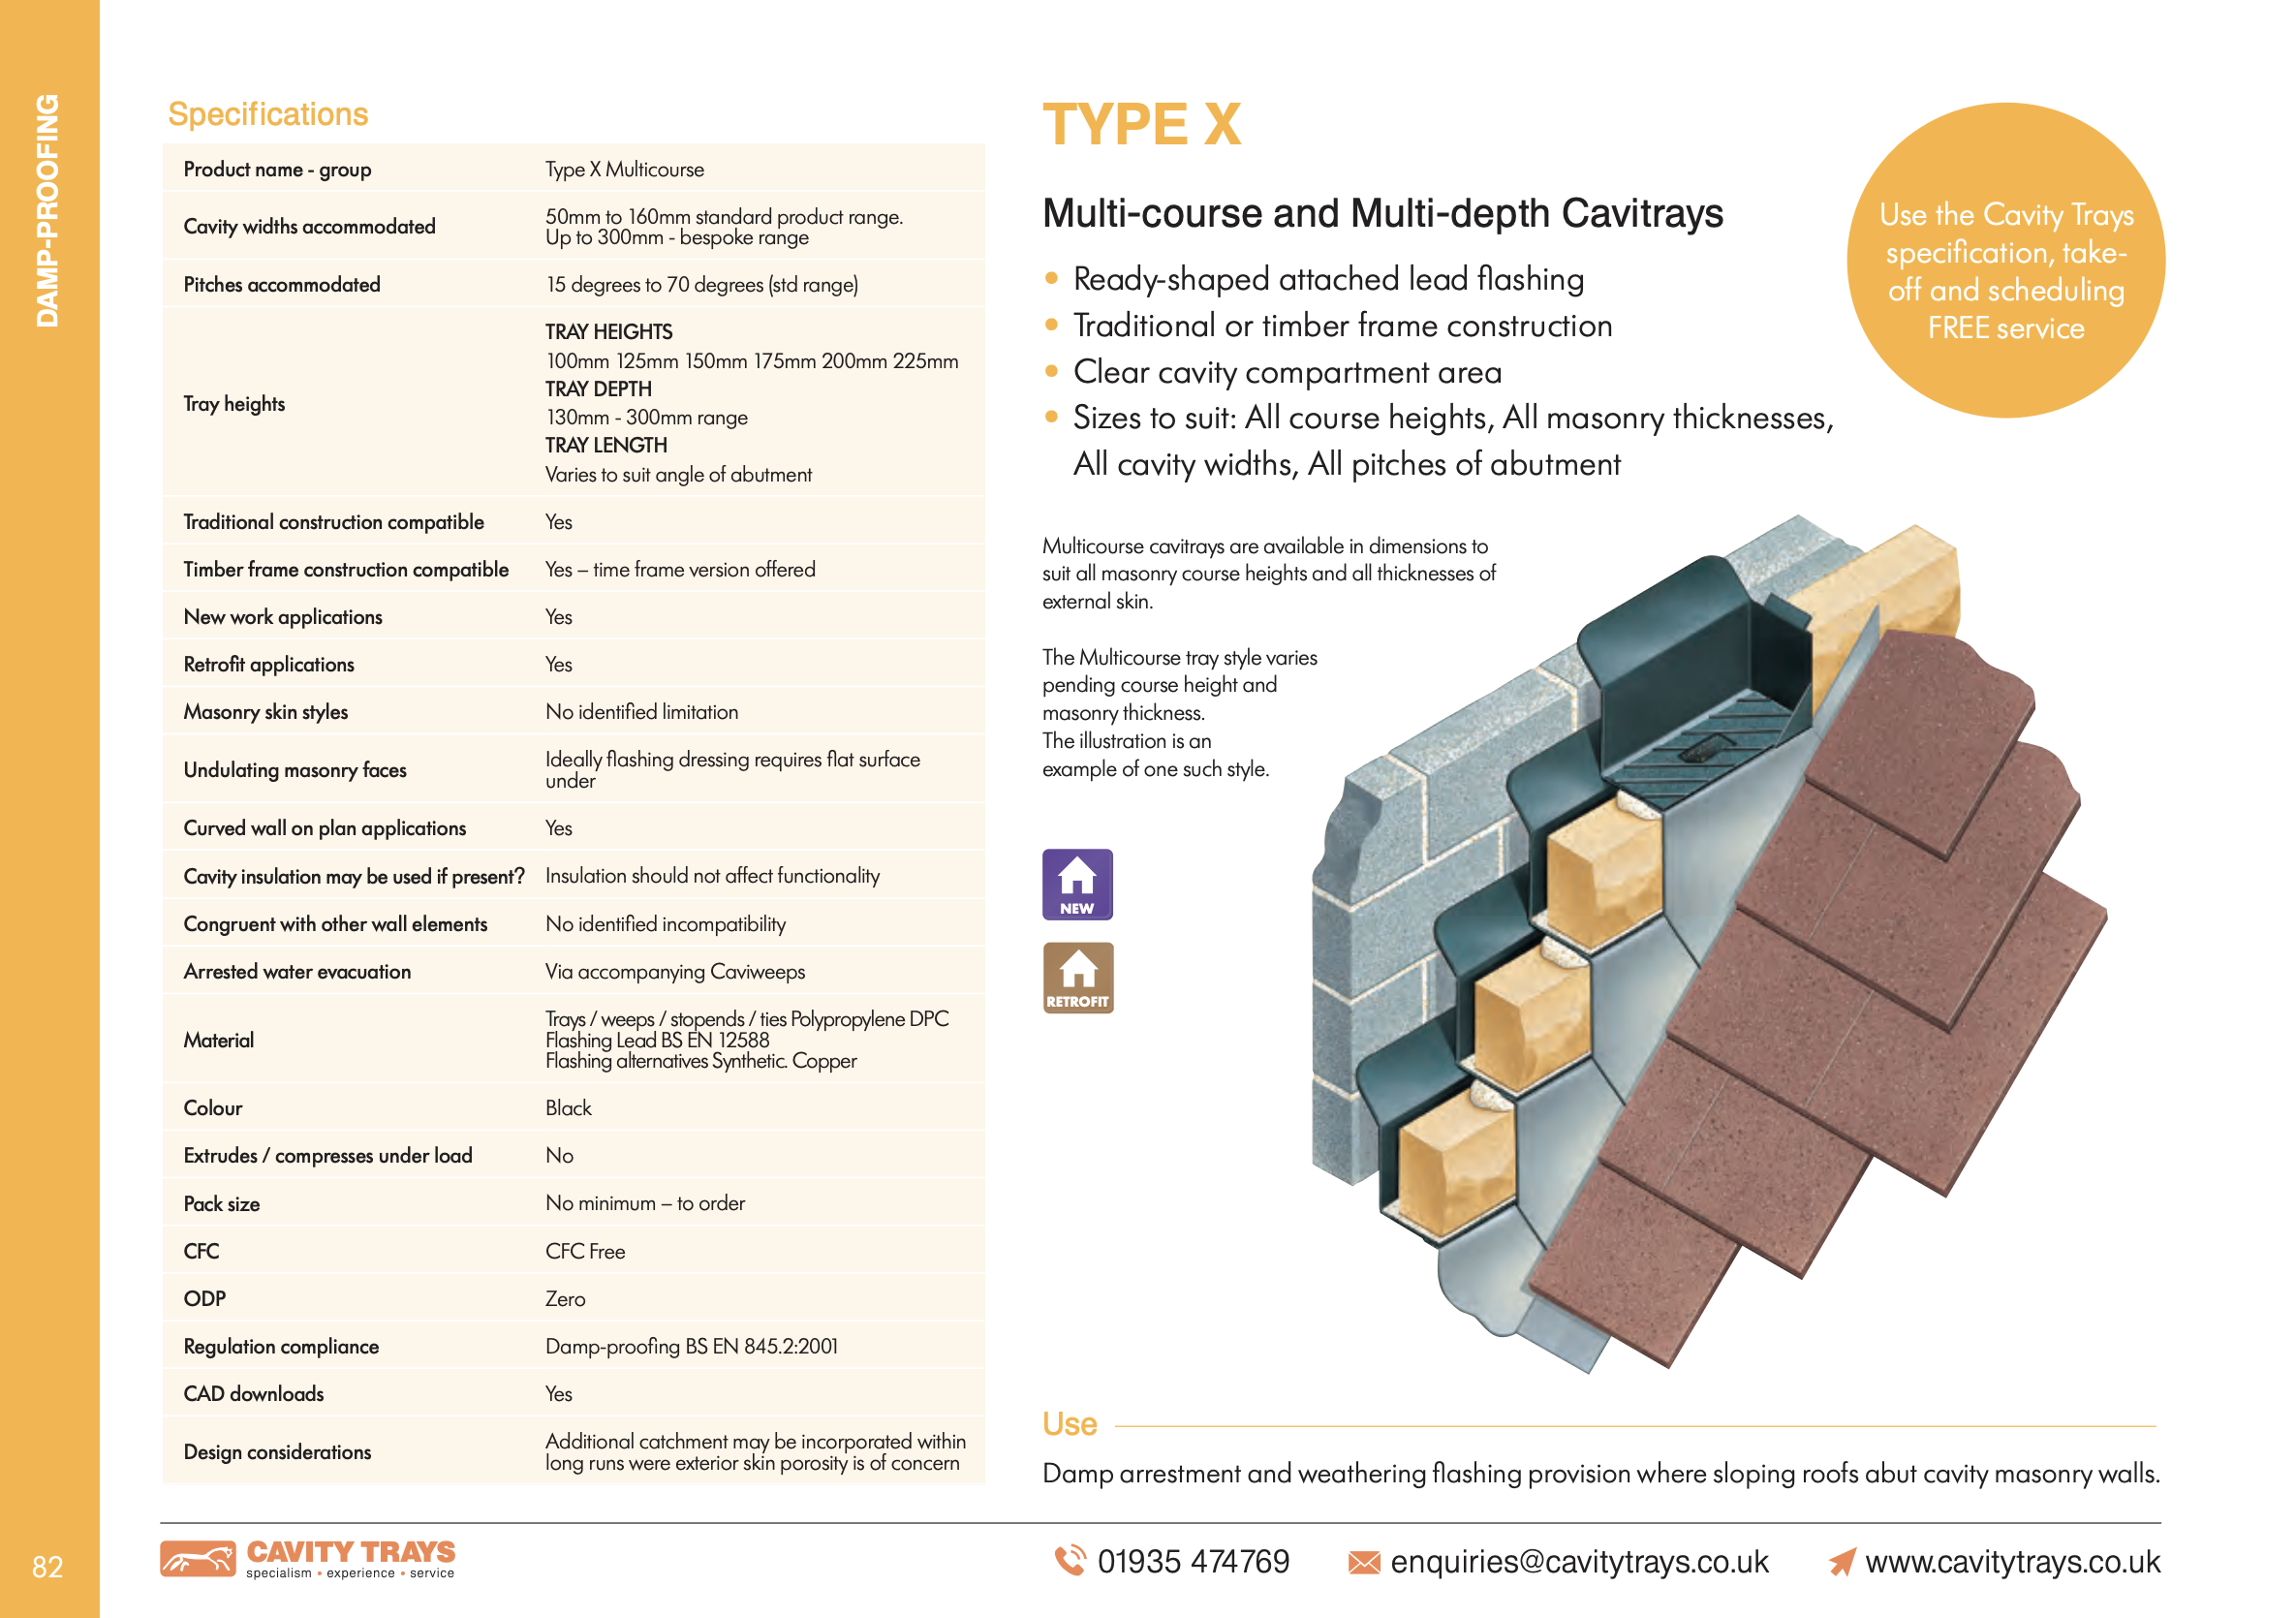 Type X Multi-course and Multi-depth Datasheet